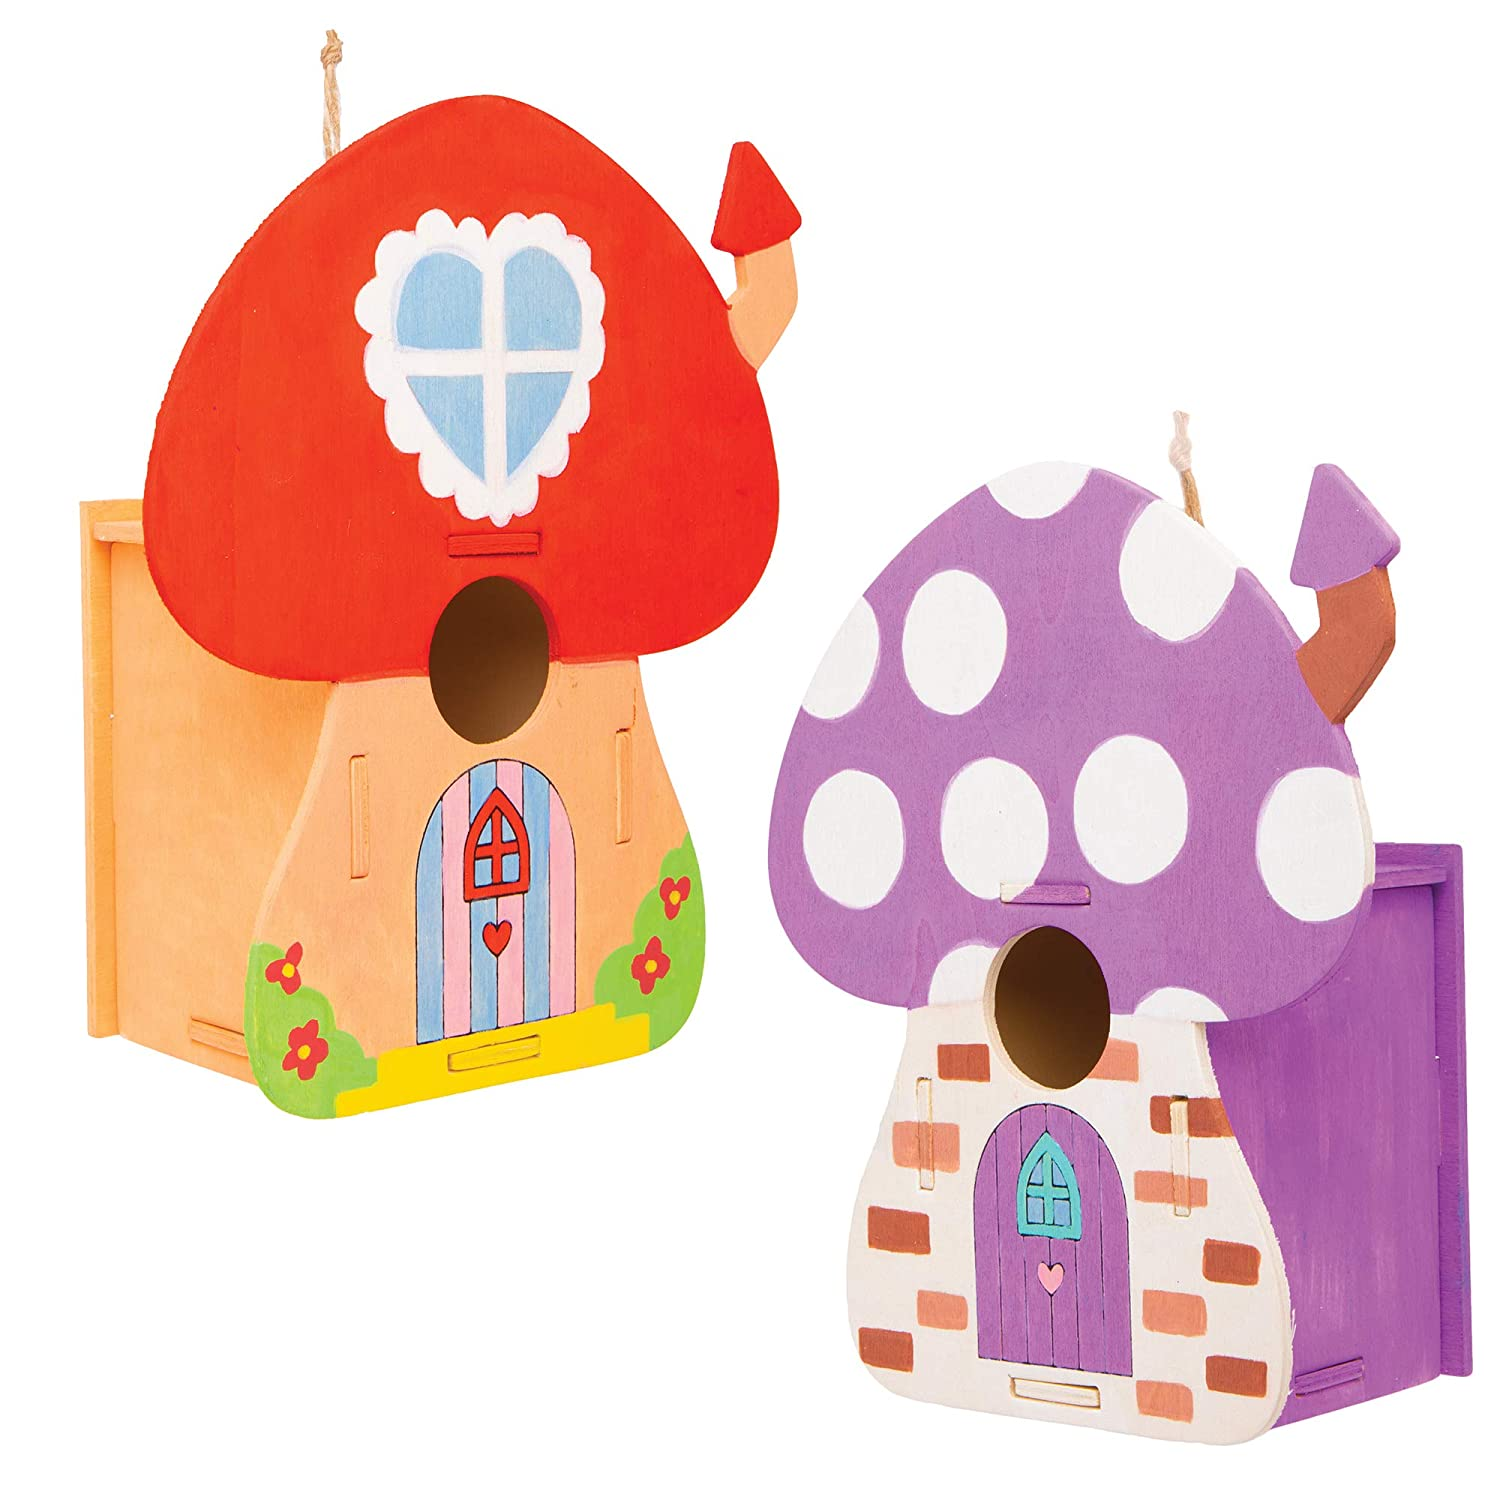 Mushroom Shape House Template for Children to Build and Decorate 2 Pack Baker Ross Fairy House Wooden Bird House Kits